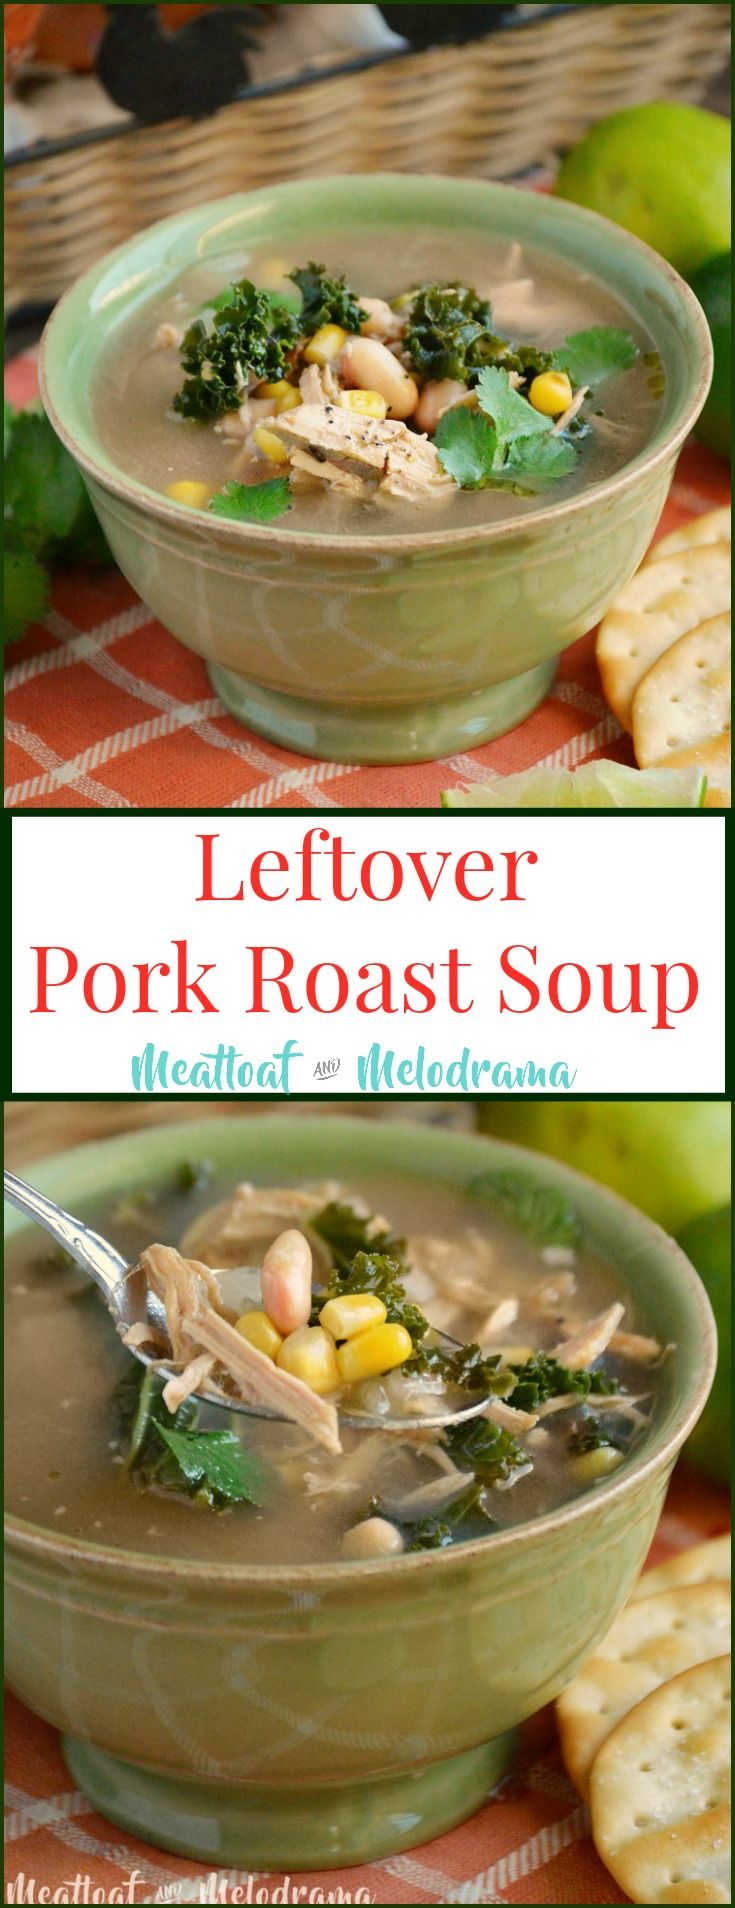 Leftover Pork Roast Soup -  A quick and easy dinner made with pulled pork, roasted corn, white beans and kale that's gluten free! from Meatloaf and Melodrama